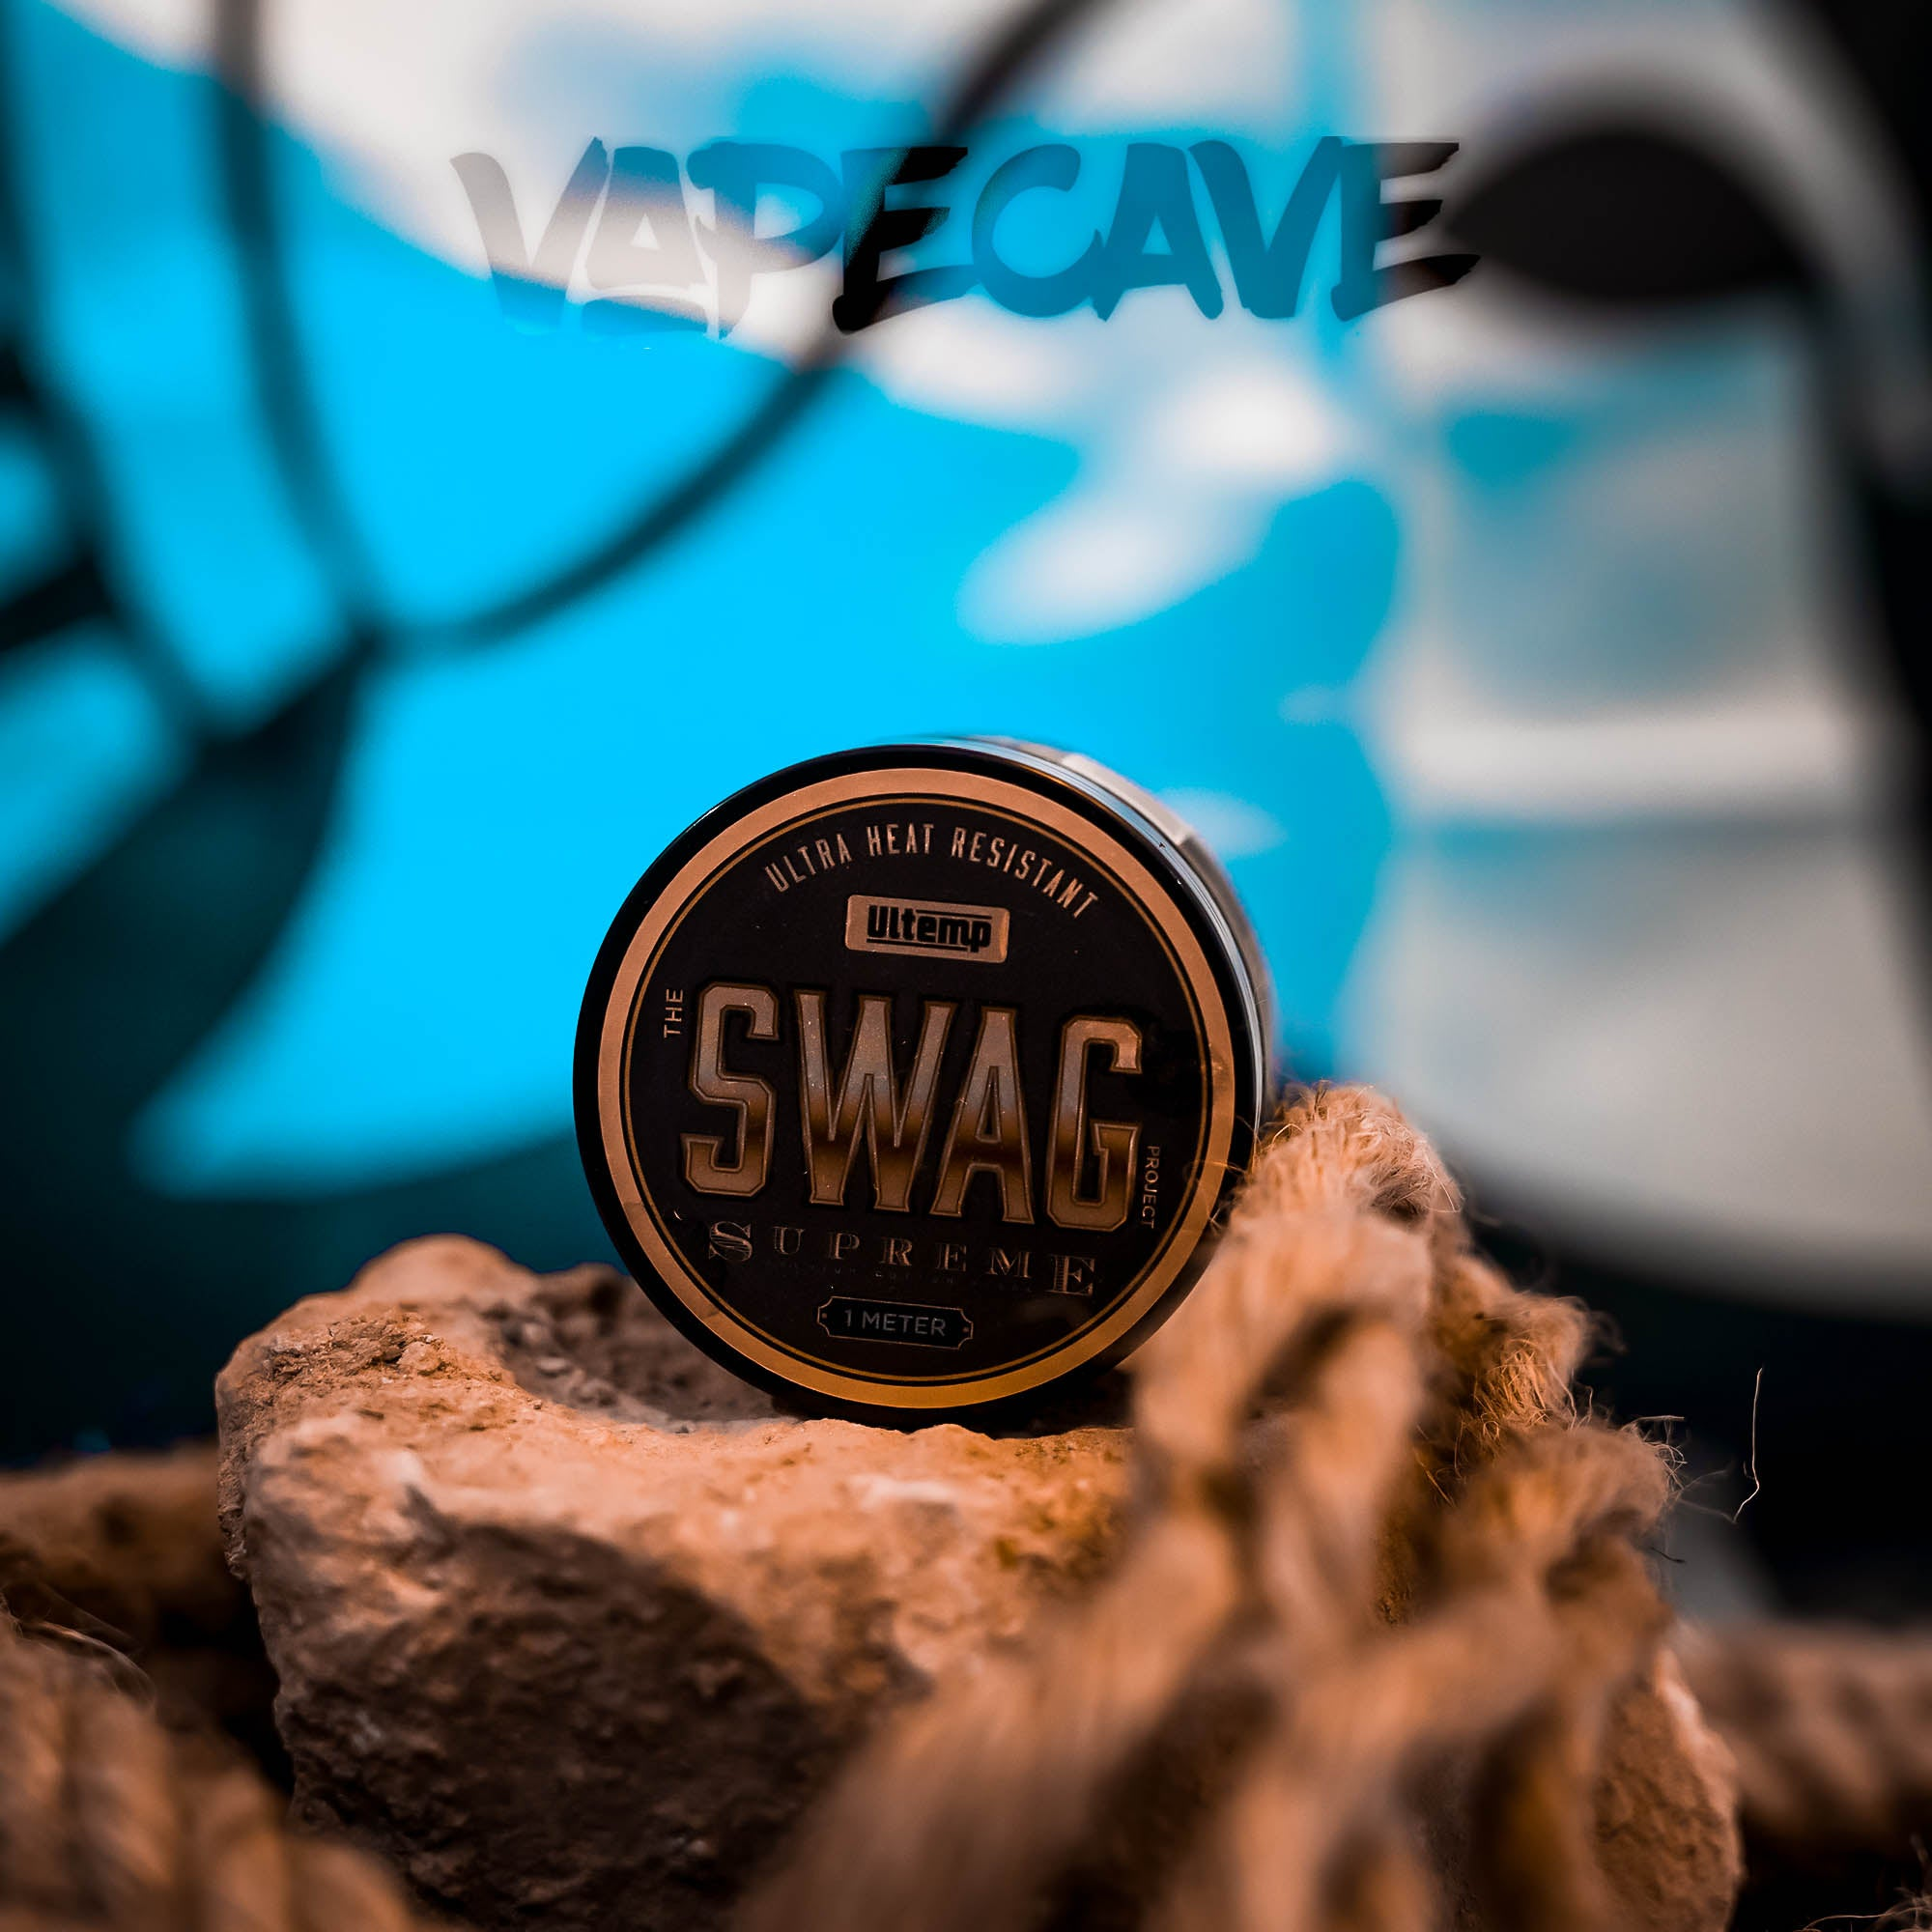 Kubera RDA  with | <br> Cotton Packs - Vape Cave - Vape Shop Melbourne Australia's Premier Shopping Destination Vape Cave